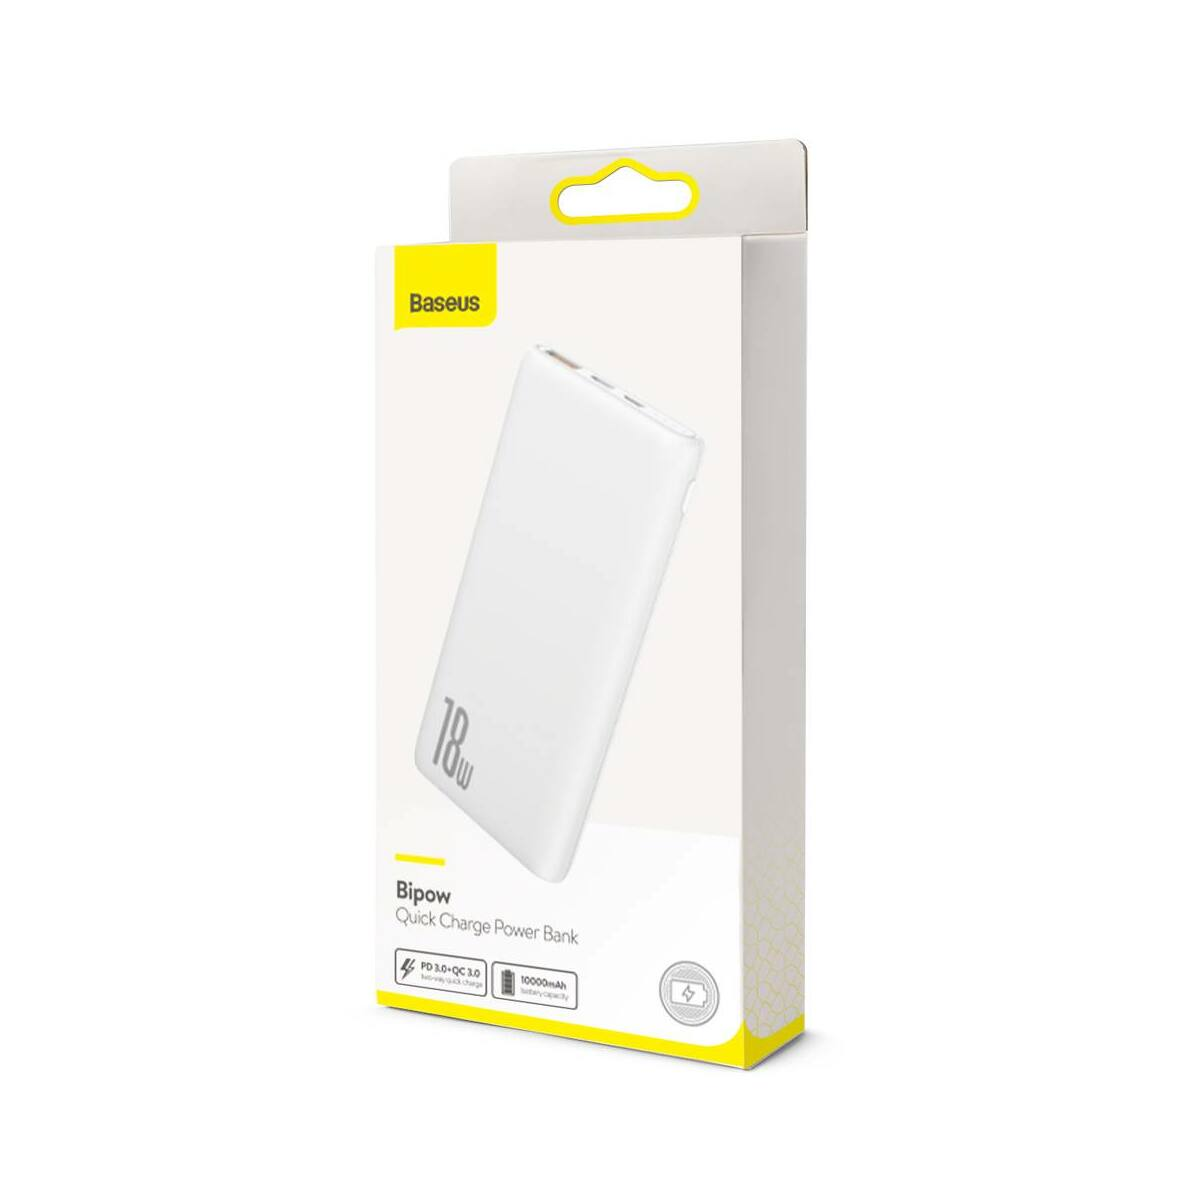 Baseus Power Bank Bipow gyors töltős Power Bank PD+QC kimenettel 3A 10000 mAh 18W, fehér (PPDML-02)